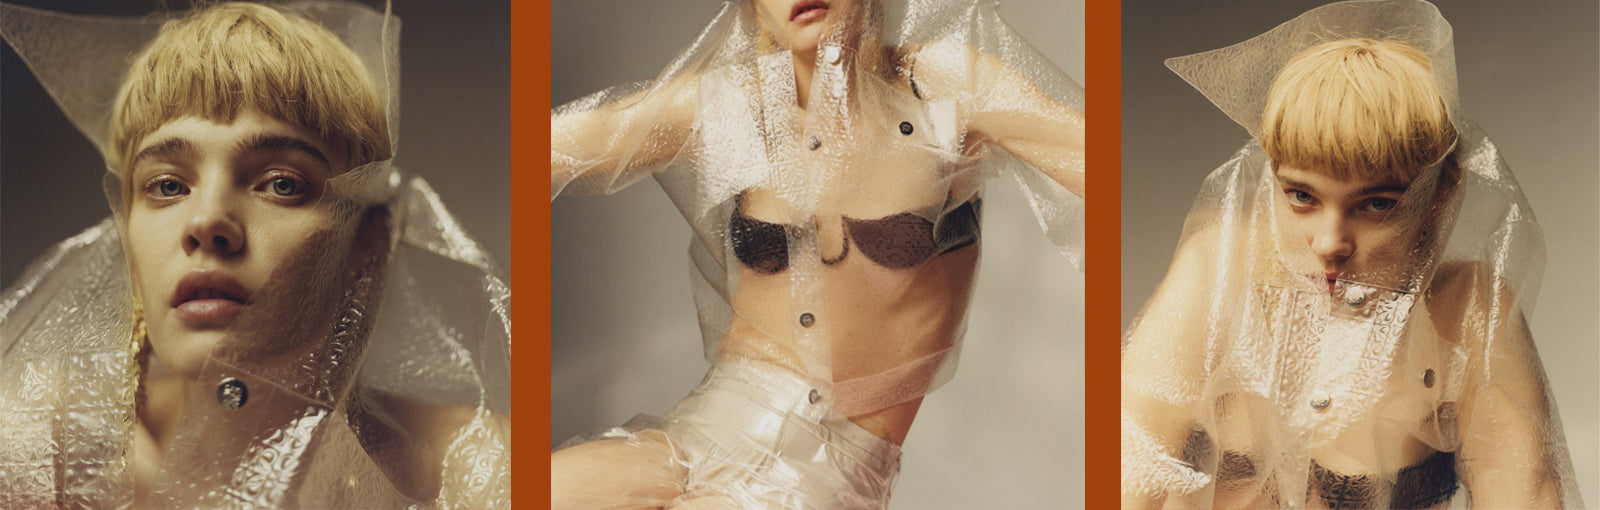 HAVE FEMALE PHOTOGRAPHERS REALLY CHANGED FASHION?